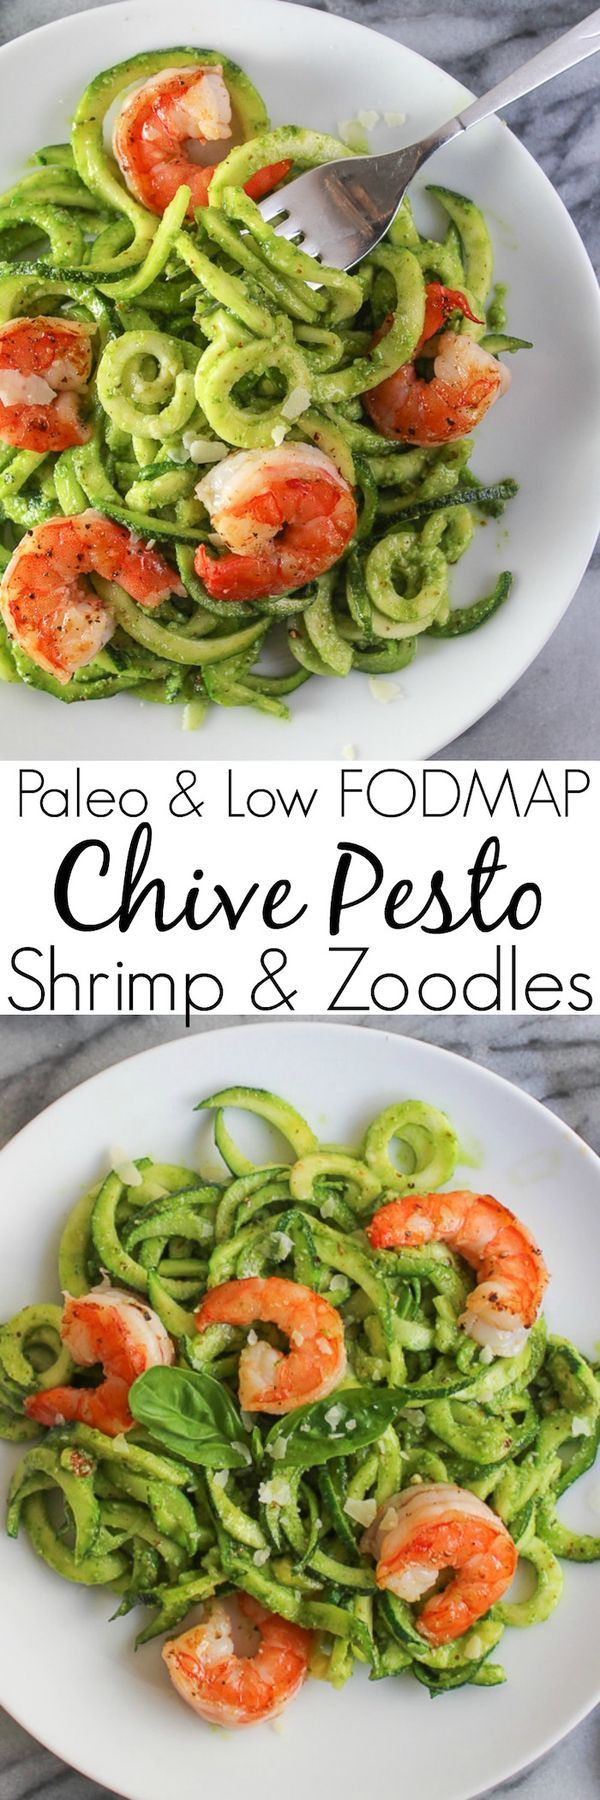 Chive Pesto Shrimp & Zoodles - paleo, low FODMAP, and whole 30 approved